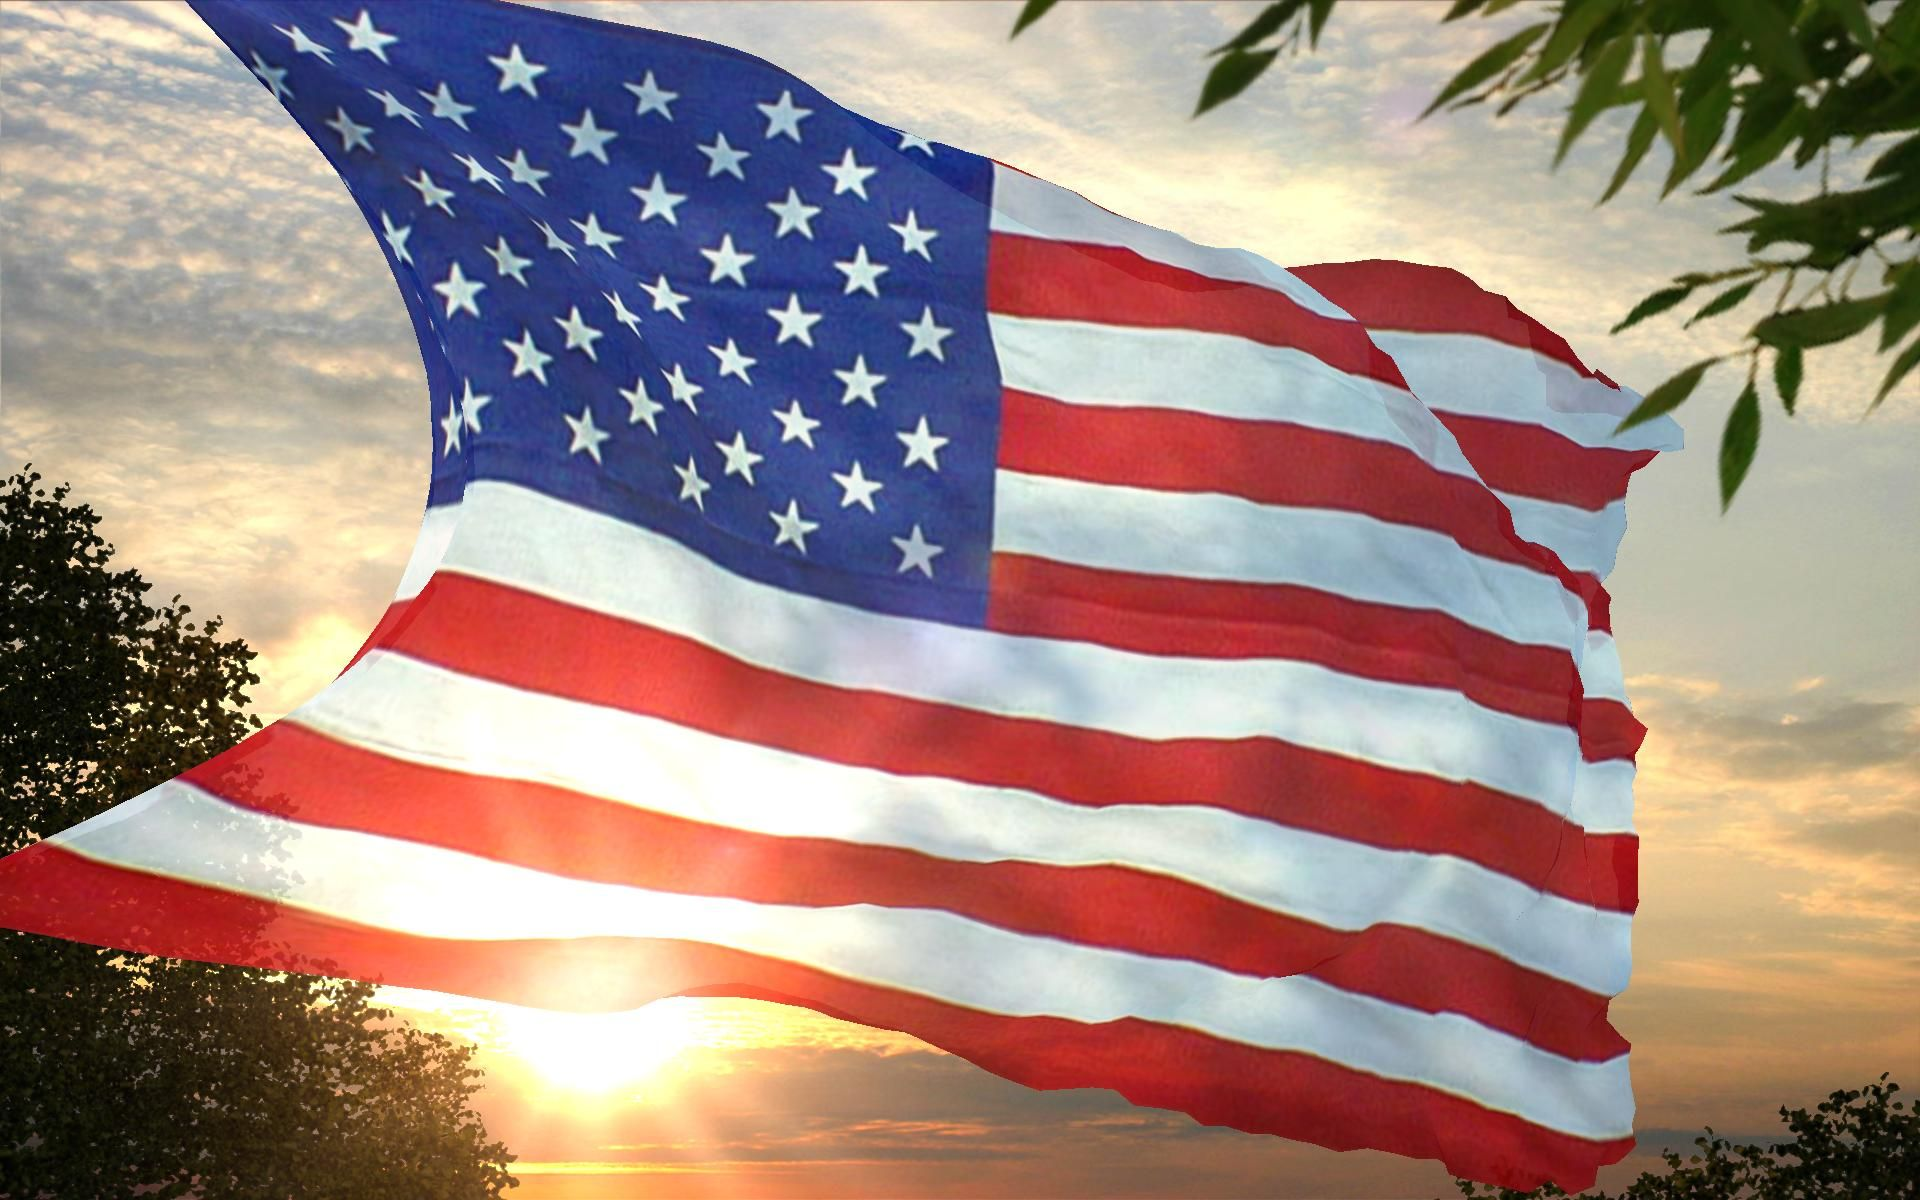 Hd wallpaper usa flag - American Flag Live Wallpaper Android Apps On Google Play